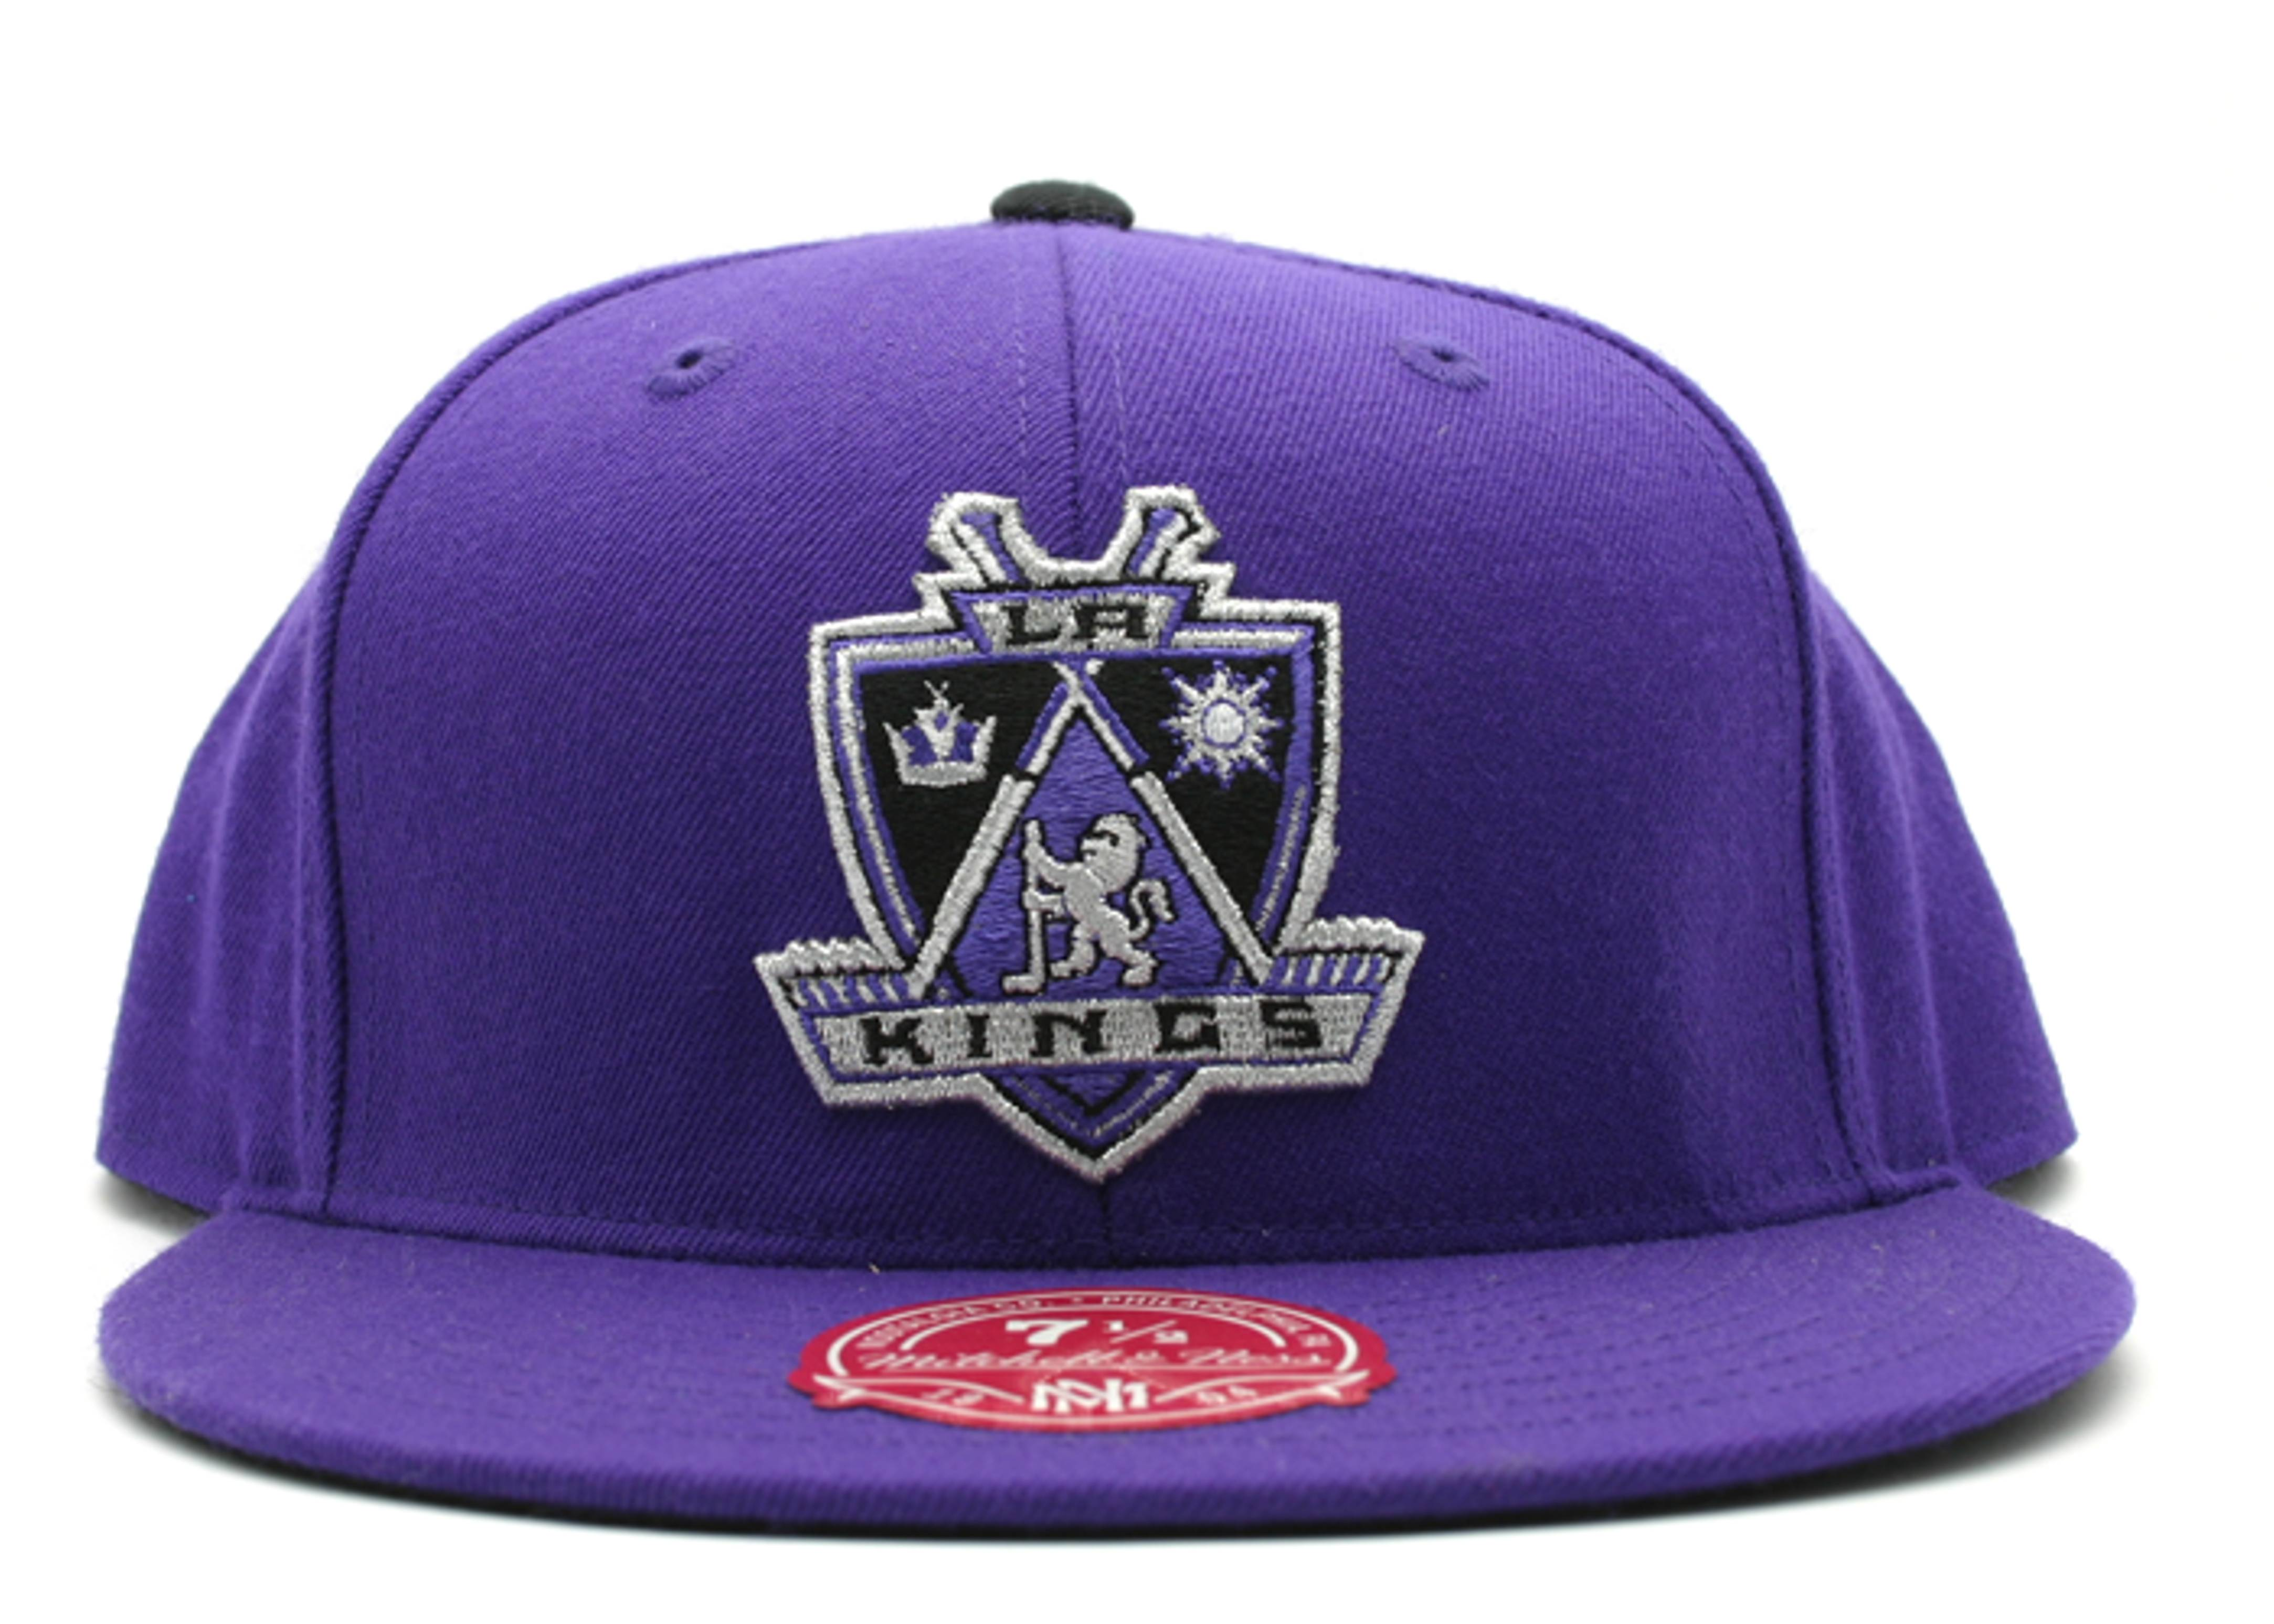 los angeles kings fitted